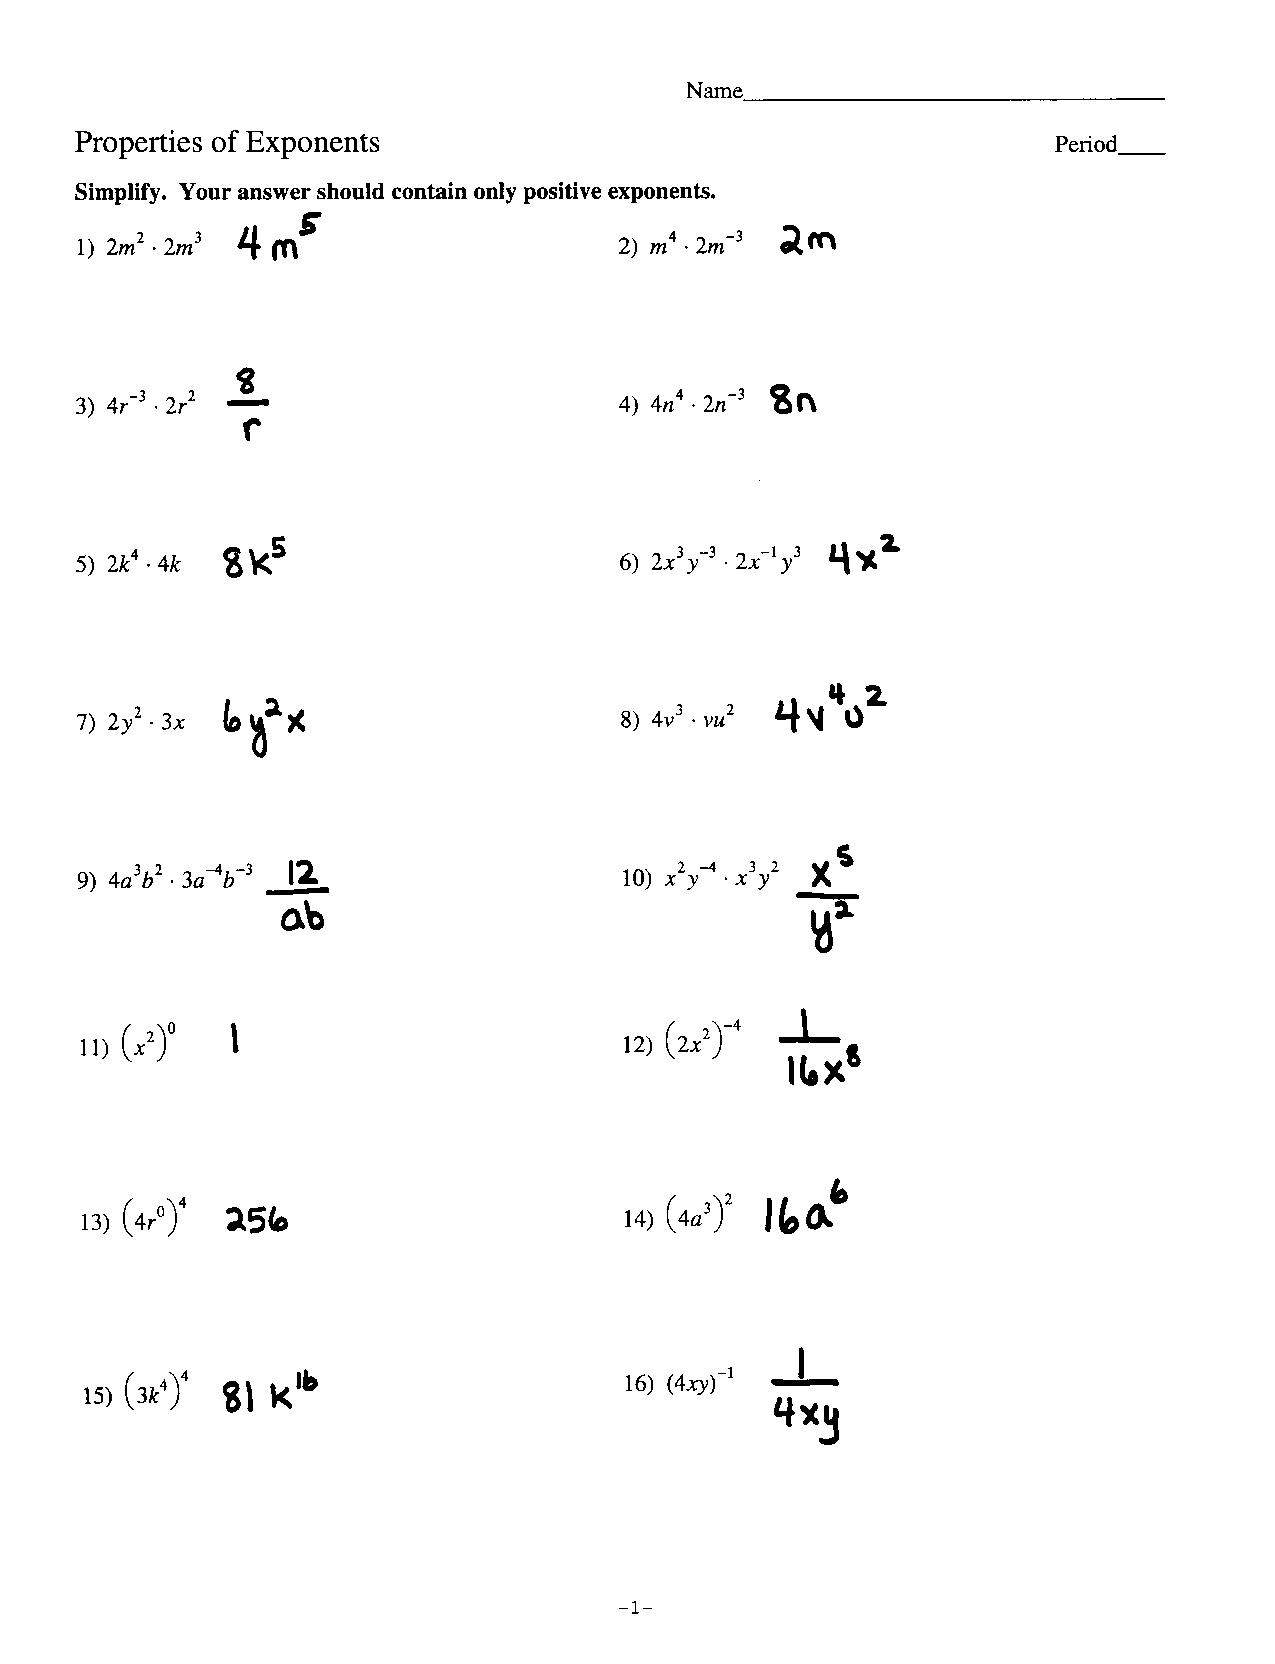 Homework Help Negative Exponents With Negative Bases